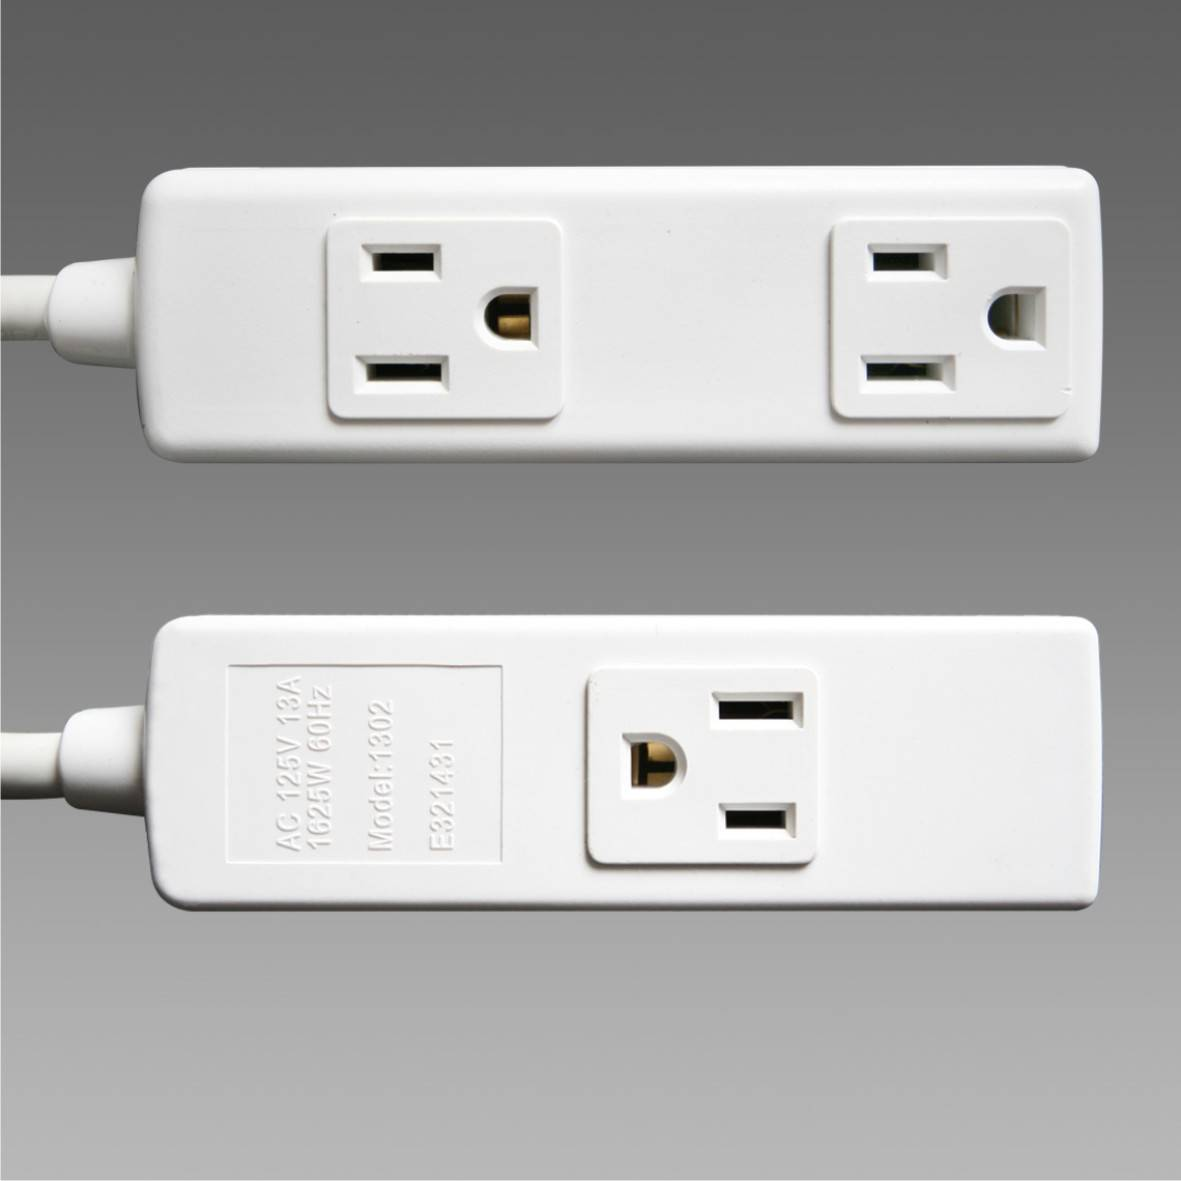 UL approved 3 outlets socket